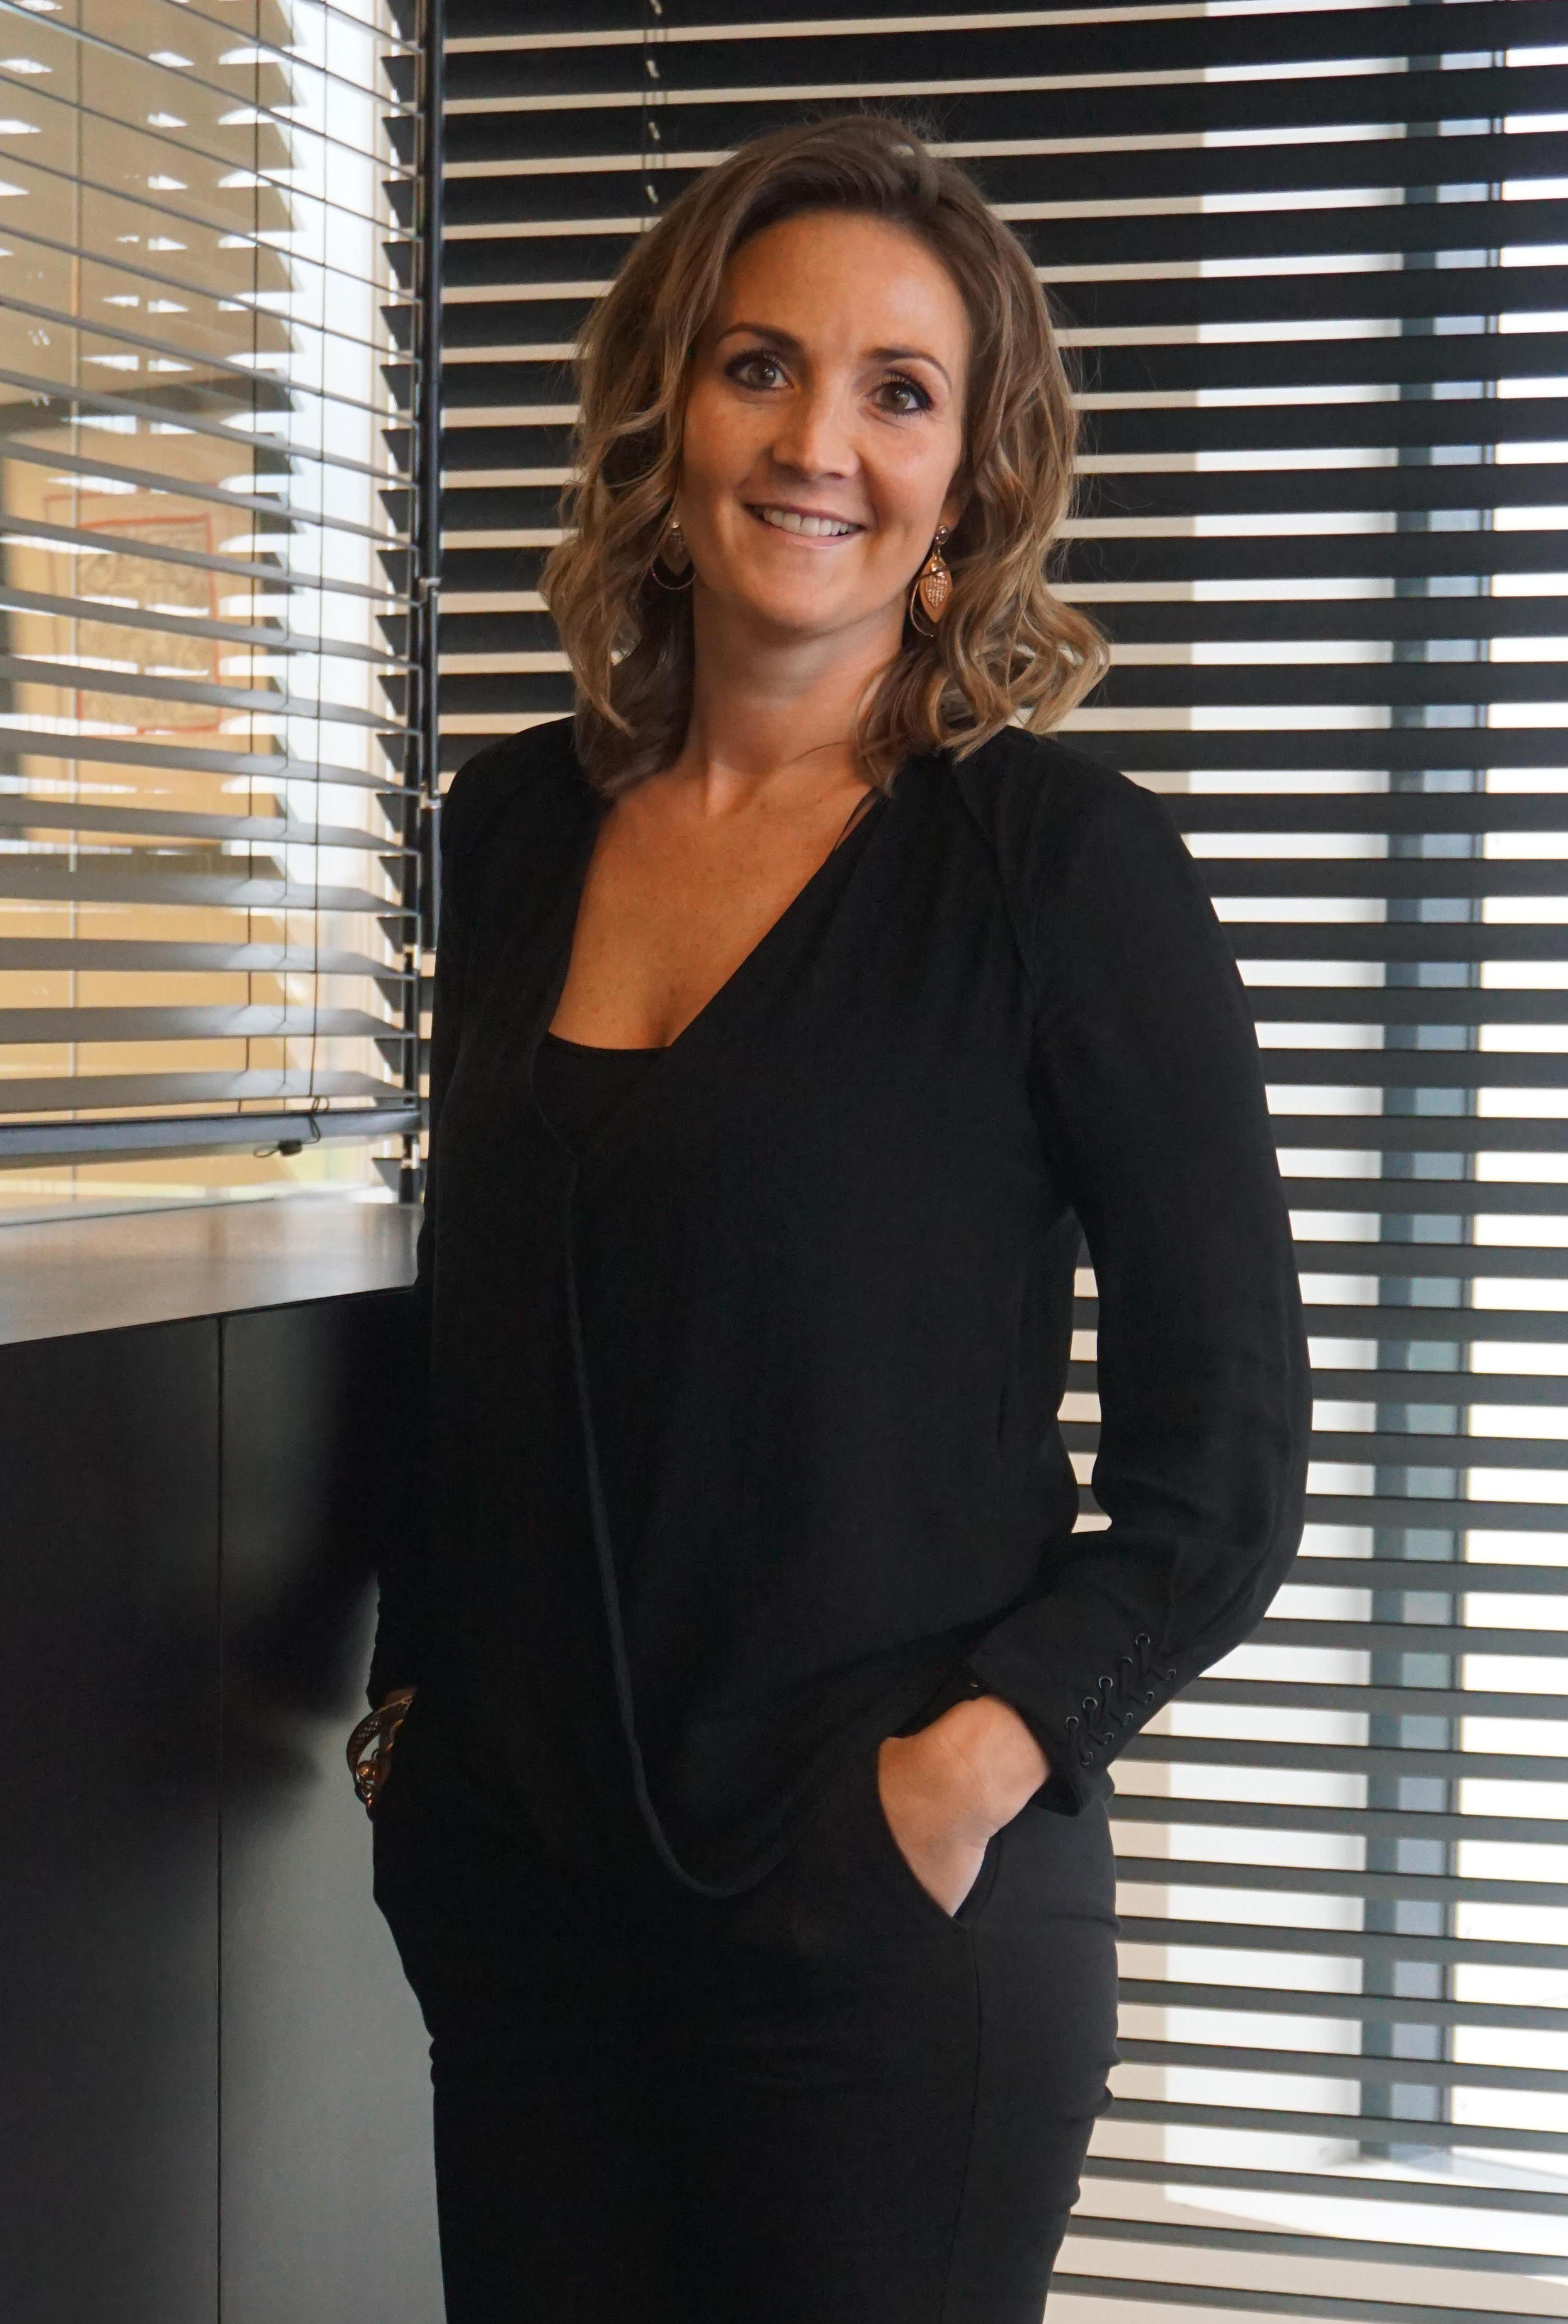 Tricia Van Damme - CCO - Chief Commercial Officer - BVI.BE